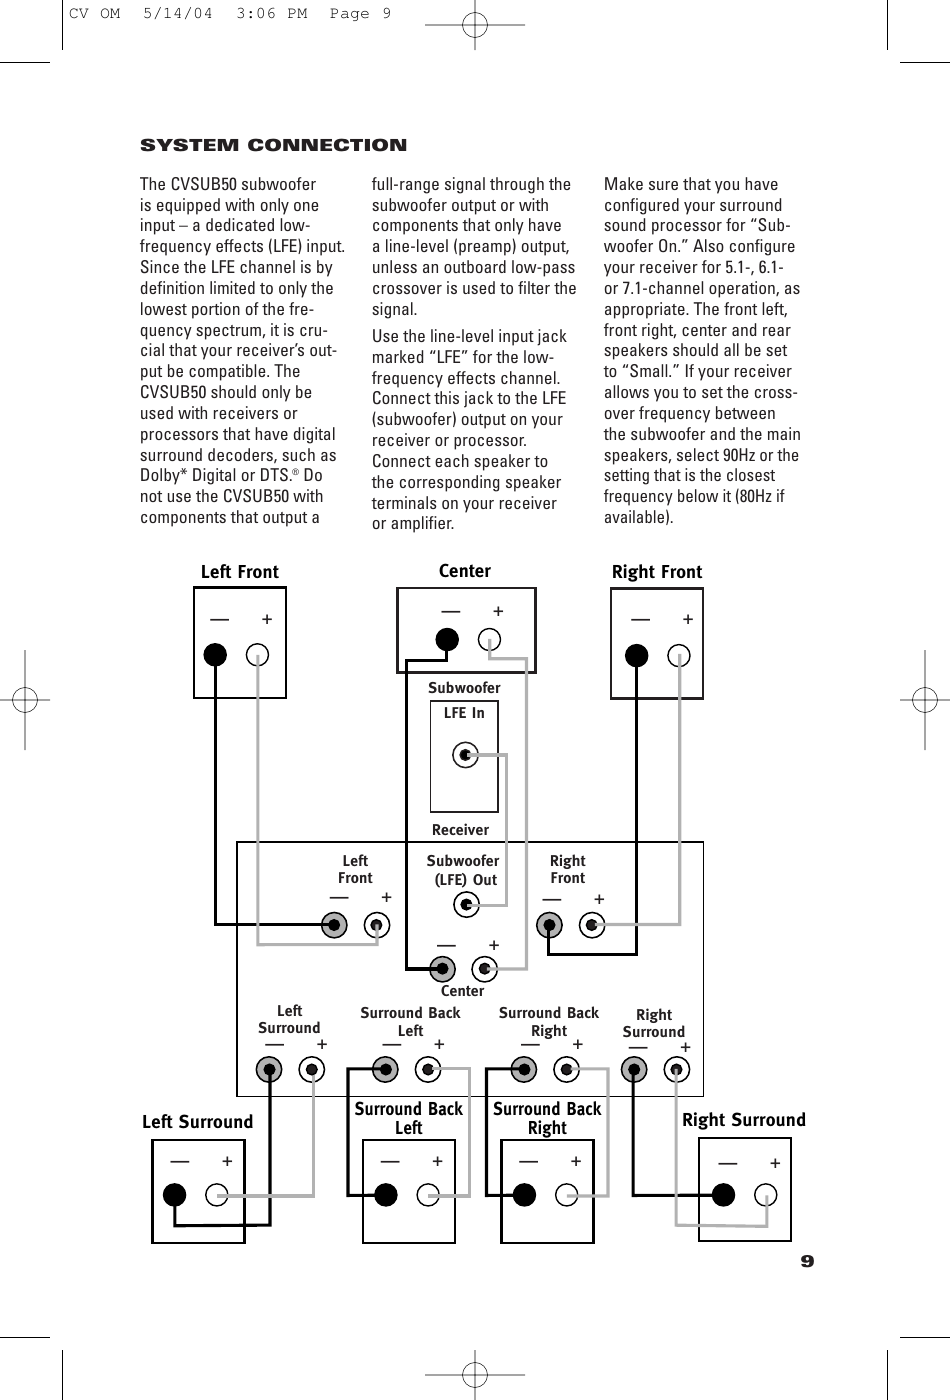 Jbl Cvcen50 Users Manual Scs3007 Om Advent Speaker Crossover Schematic Diagrams Page 9 Of 12 Scs300